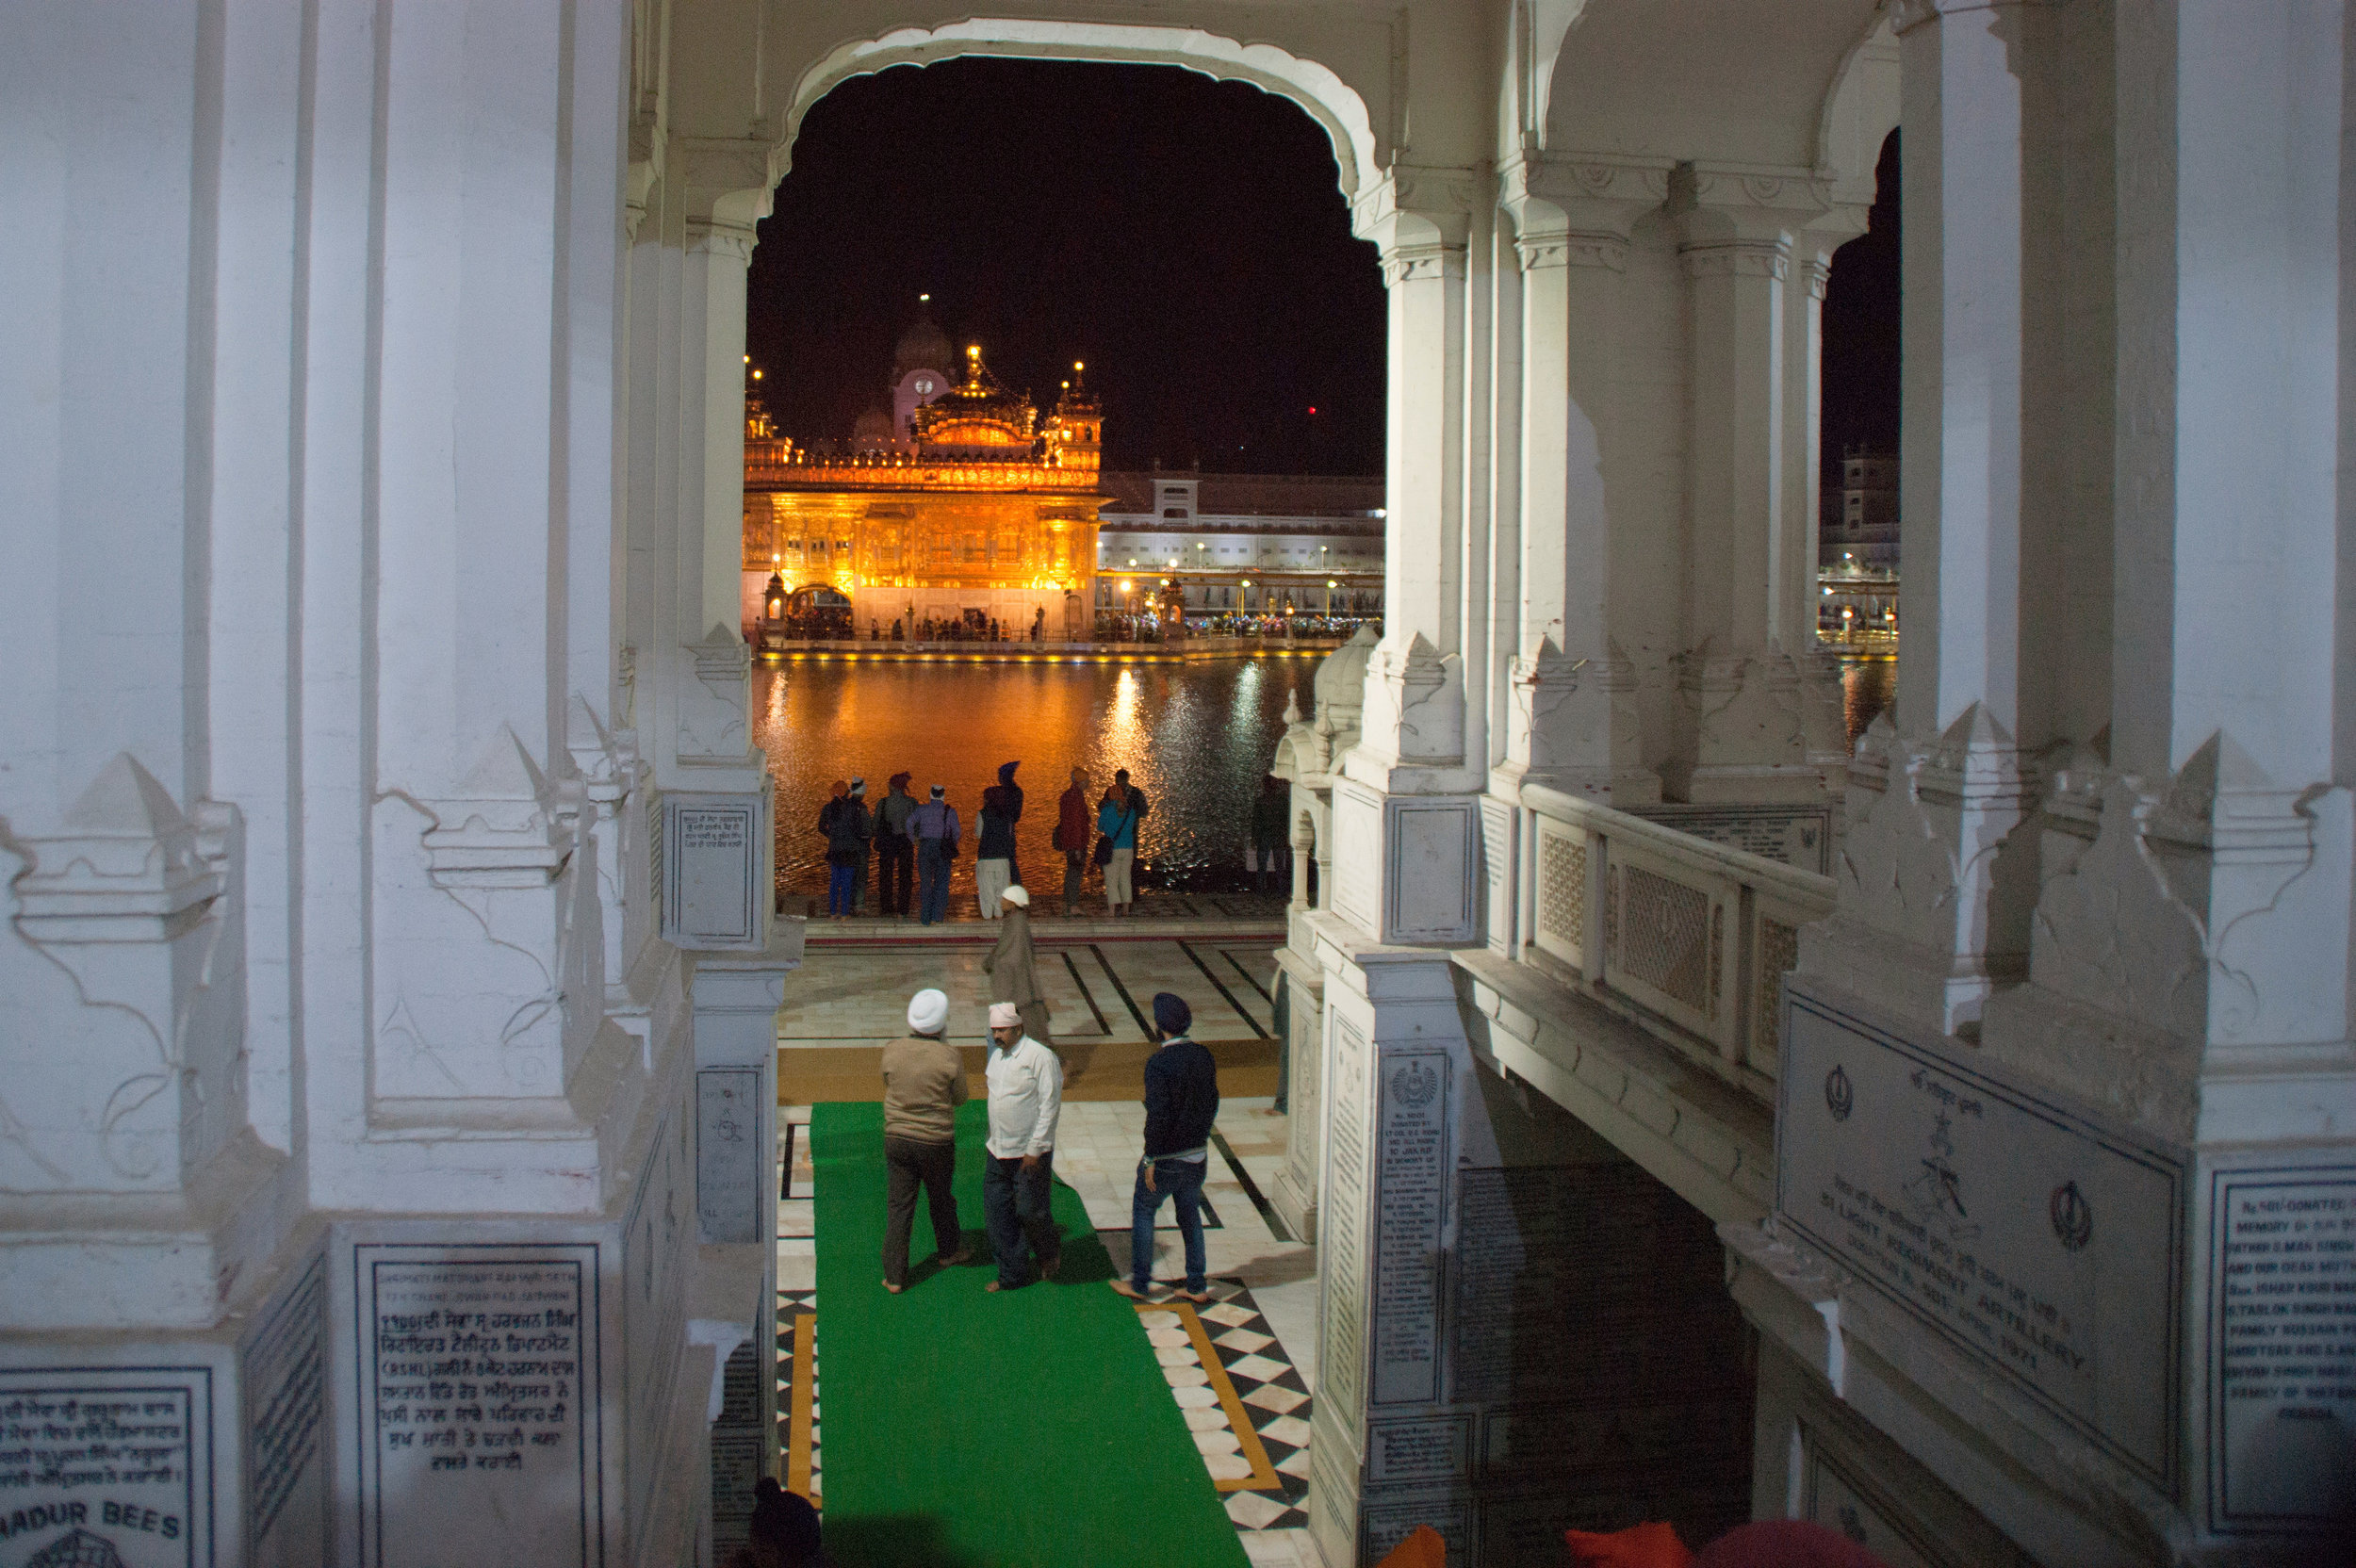 Gateway obstructing part of the Golden Temple in Punjab, India.